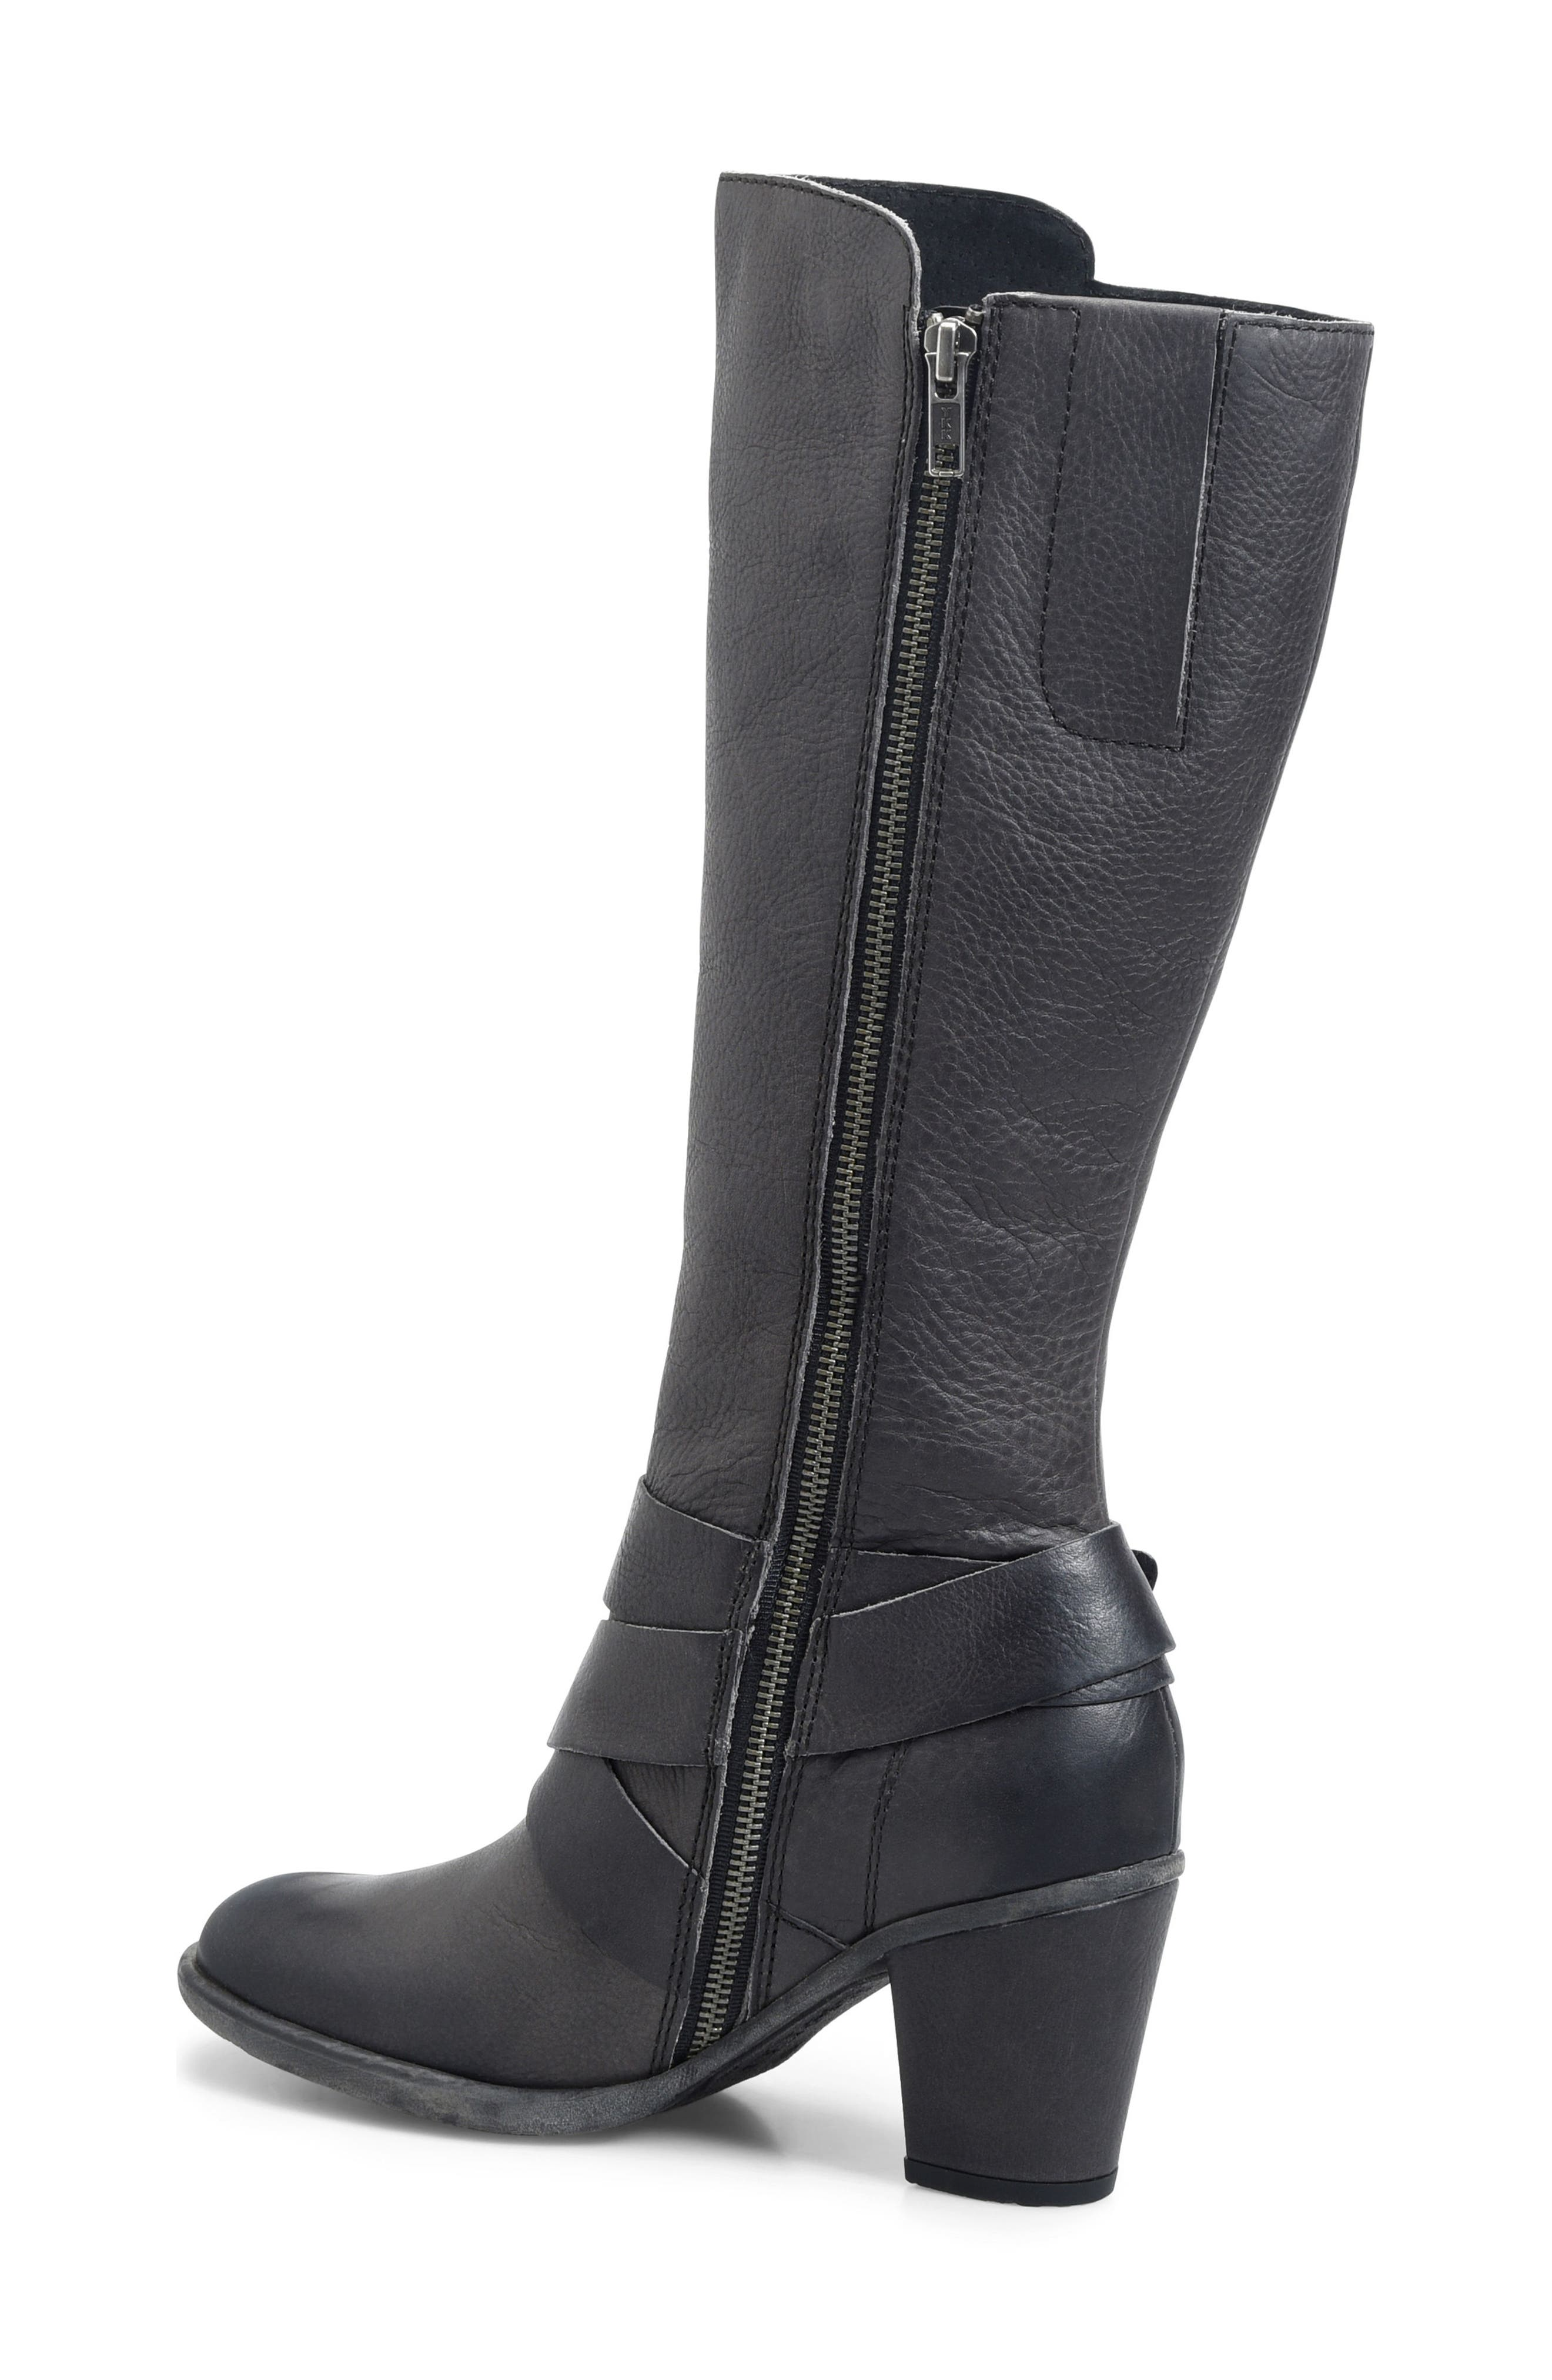 Cresent Knee High Boot,                             Alternate thumbnail 2, color,                             Dark Grey Leather